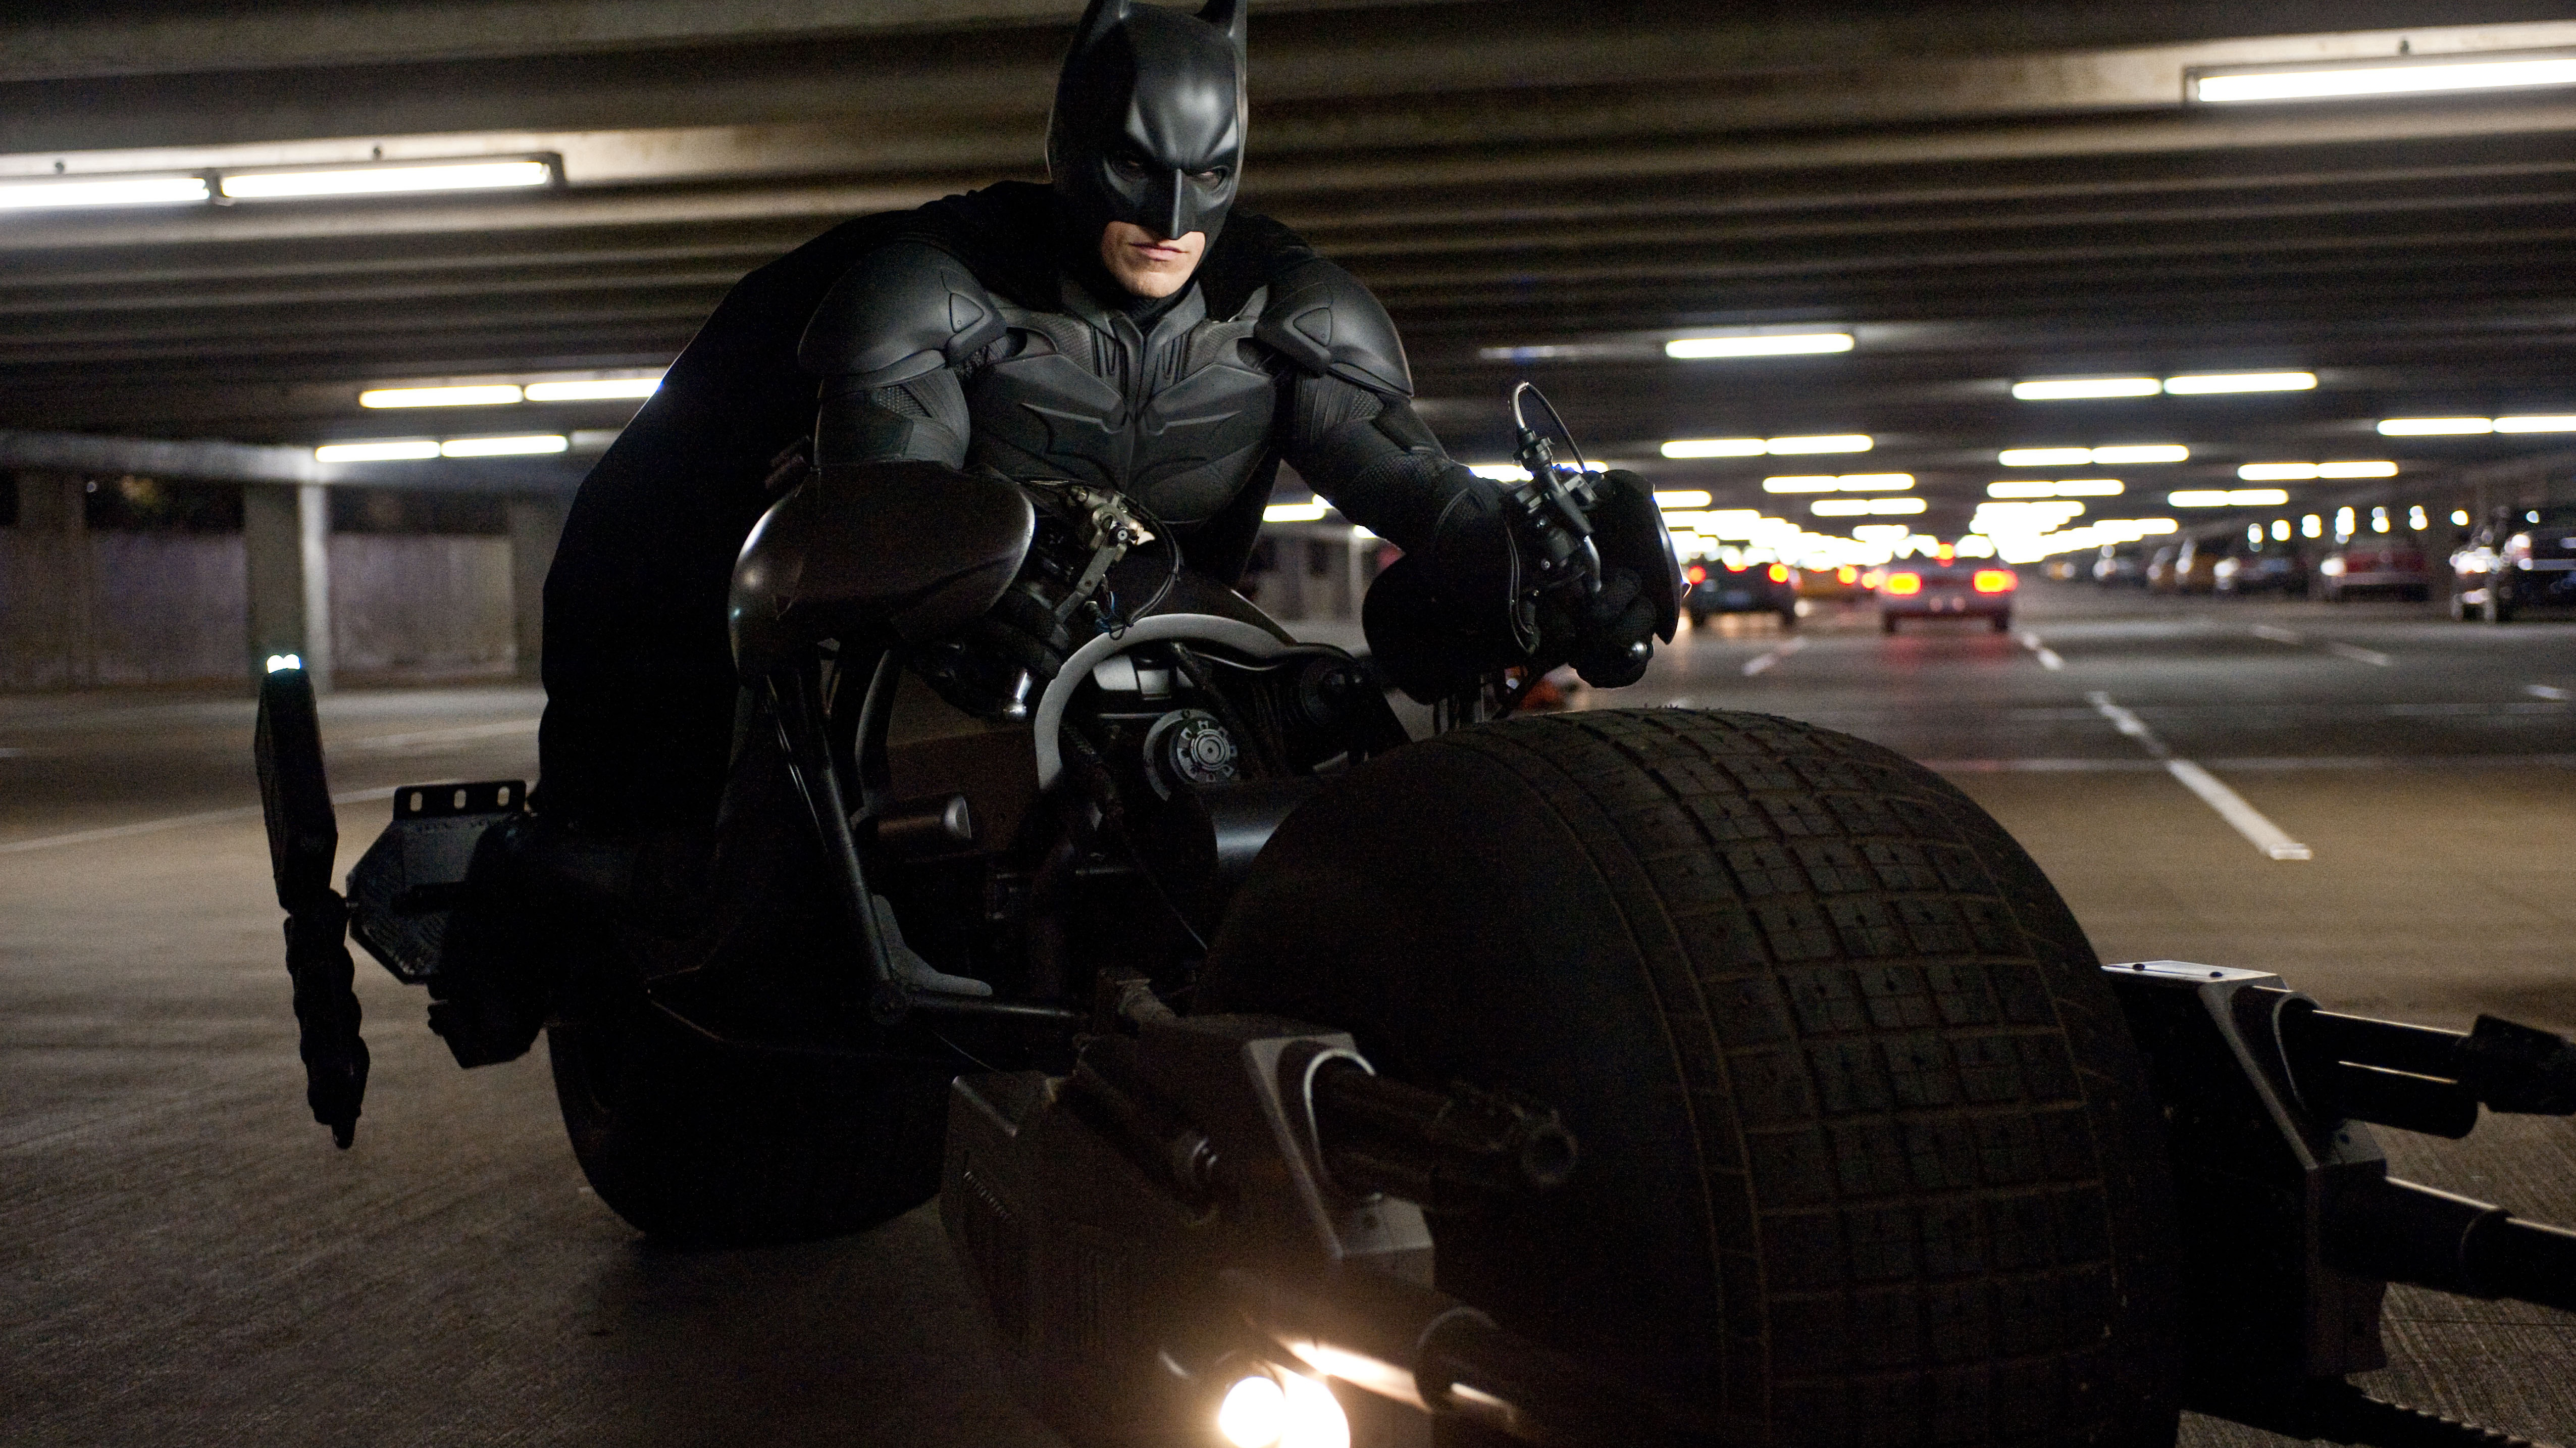 Christian Bale as Batman in The Dark Knight Rises. The final film in Christopher Nolan's Batman trilogy, which began with Batman Begins in 2005, deals explicitly with our contemporary political times.